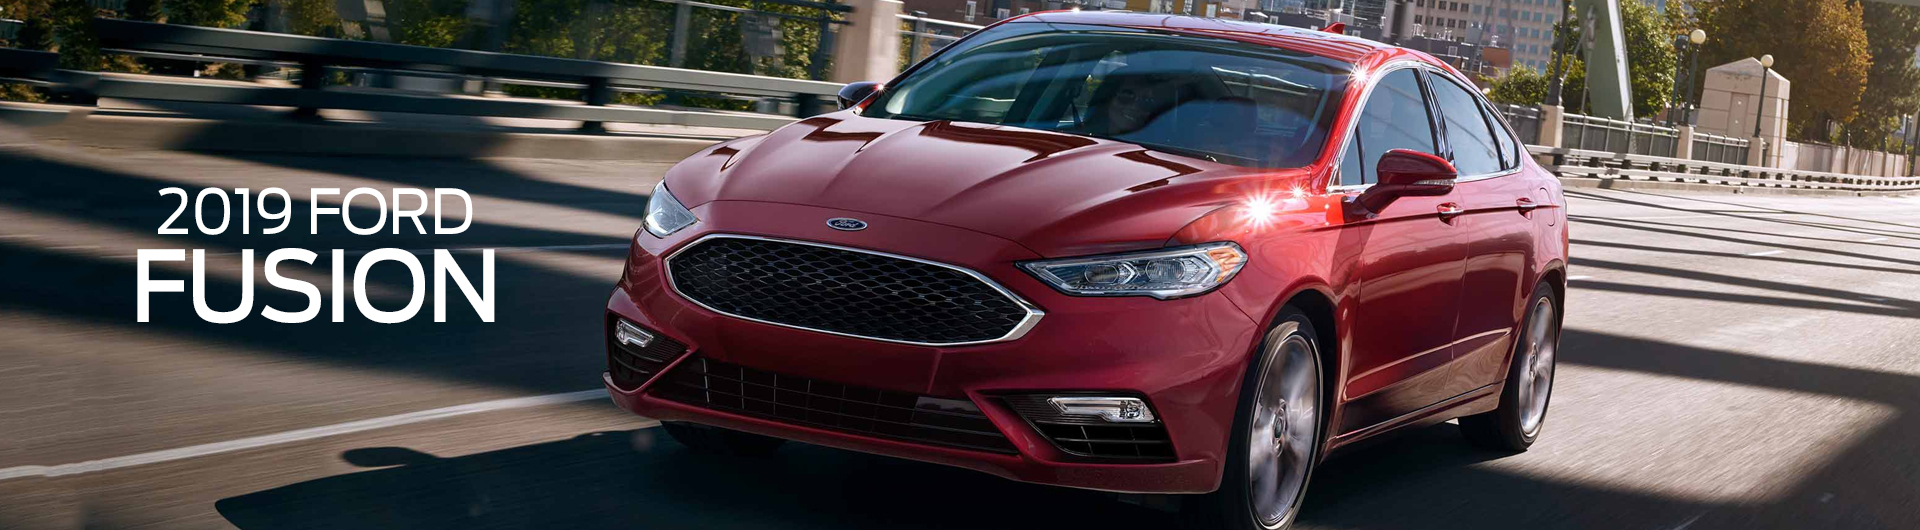 Joe Cooper Ford Midwest City >> 2019 Ford Fusion Dealer In Shawnee Ok Joe Cooper Ford Of Shawnee